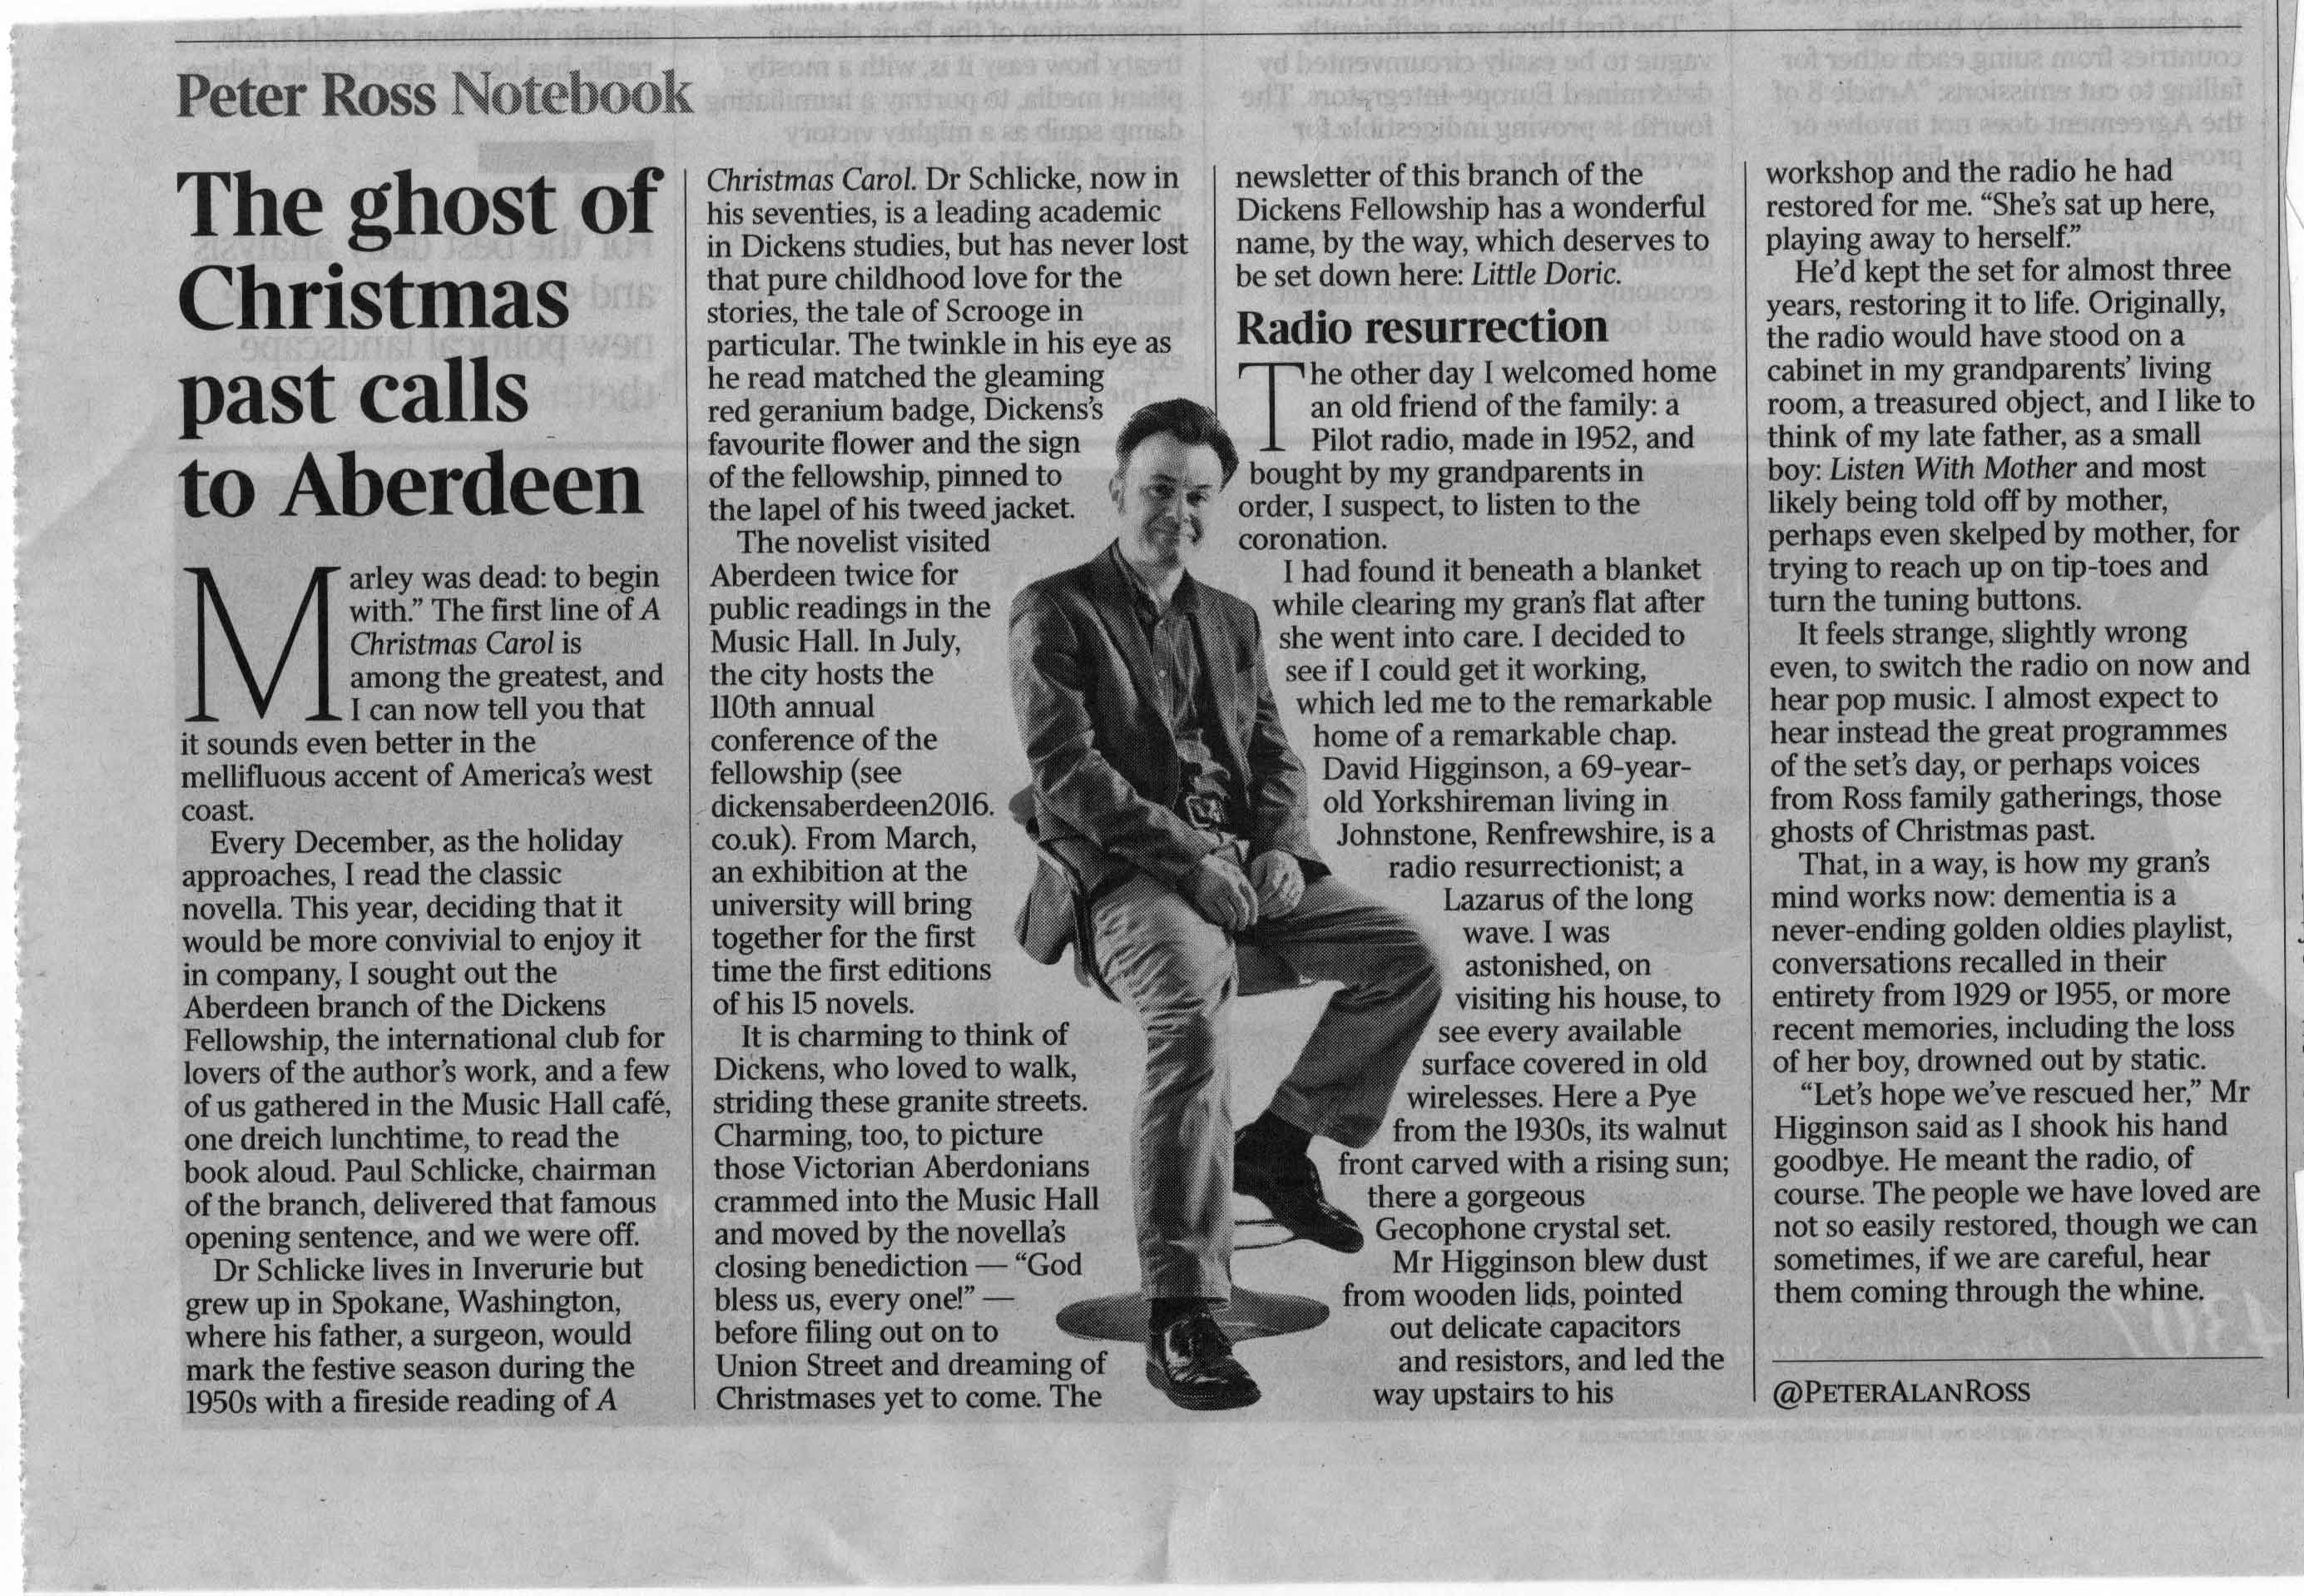 ABERDEEN BRANCH CHRISTMAS READING REPORTED IN 'THE TIMES' | The